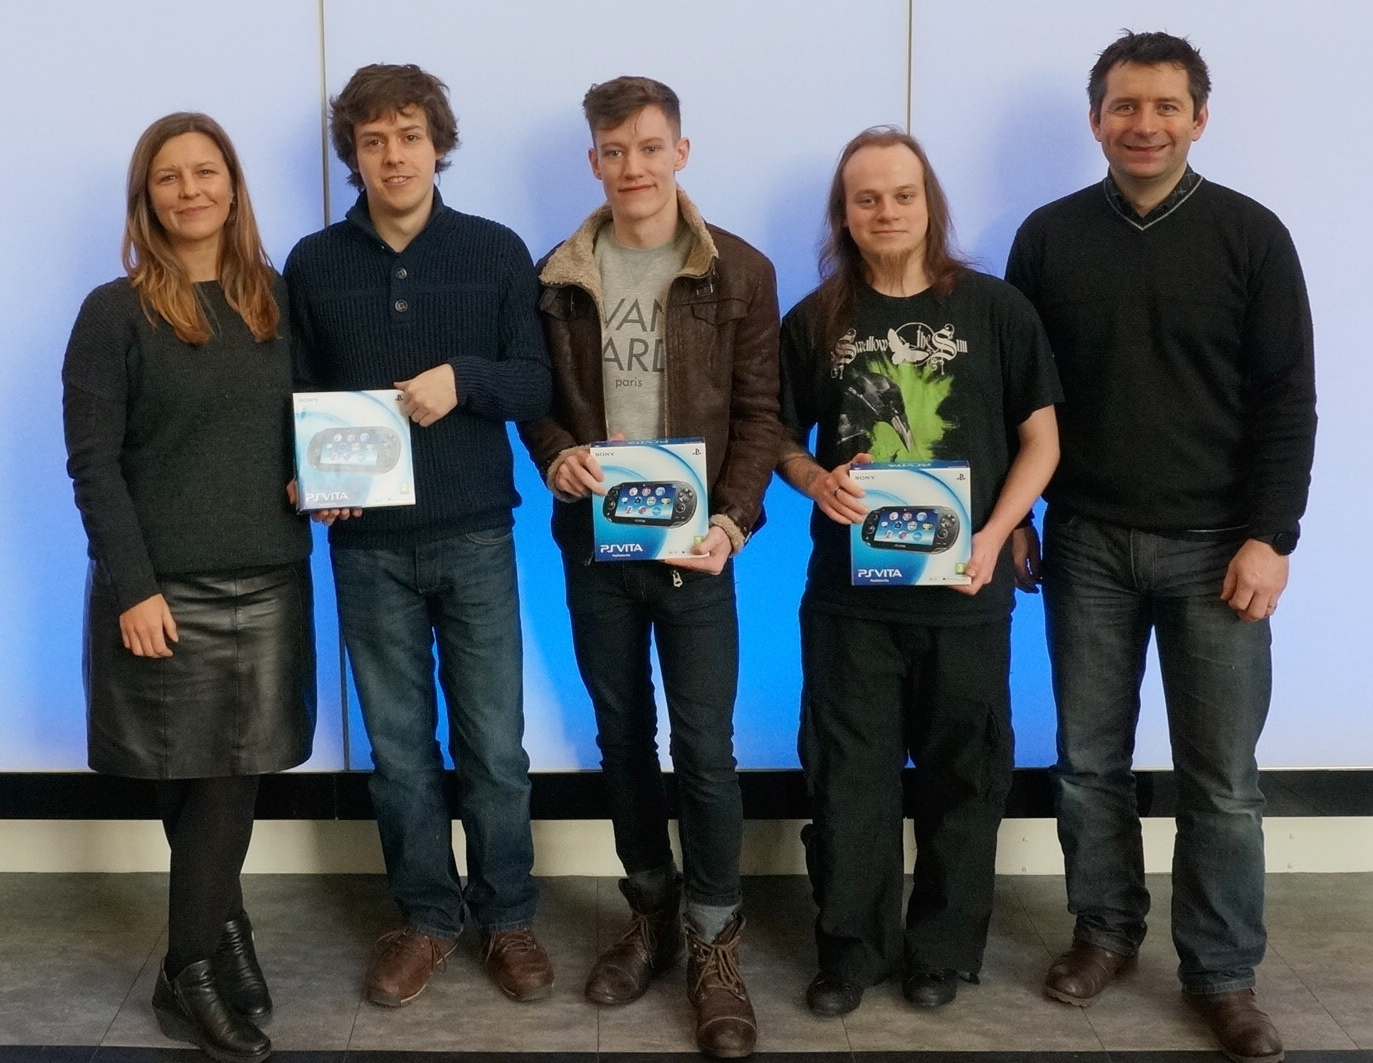 Abertay Students PS Vita Prize Winners